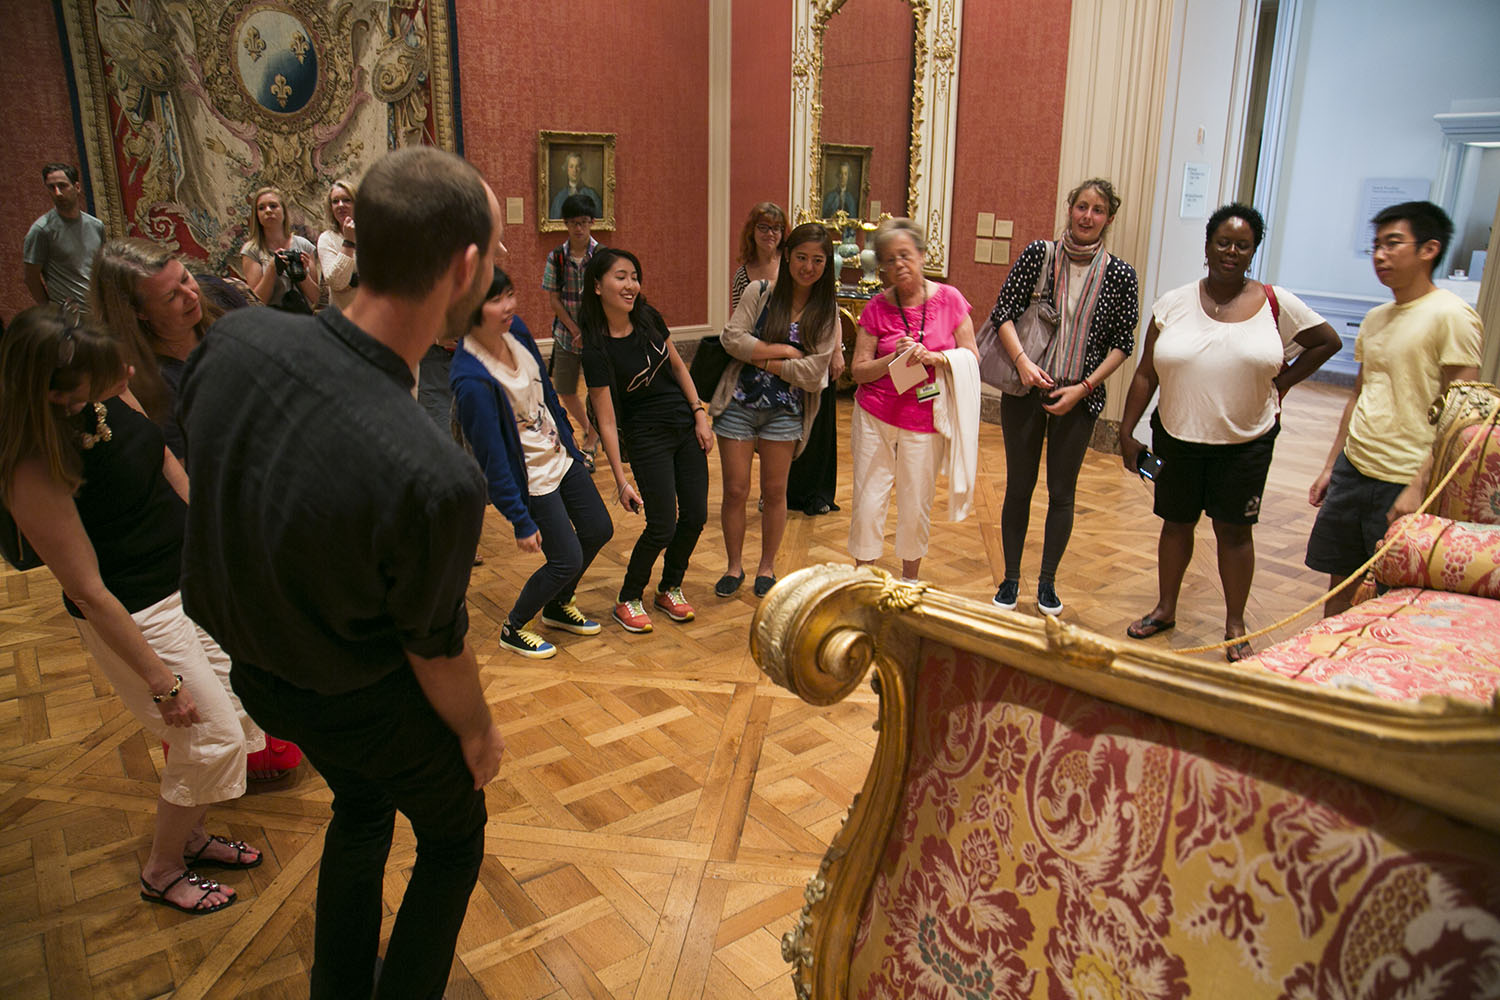 """Are we allowed to move like this?"" As participants explore what the Pink Bed might be asking of them, this frequent question reflects the tour's playful subversion of behavioral norms."